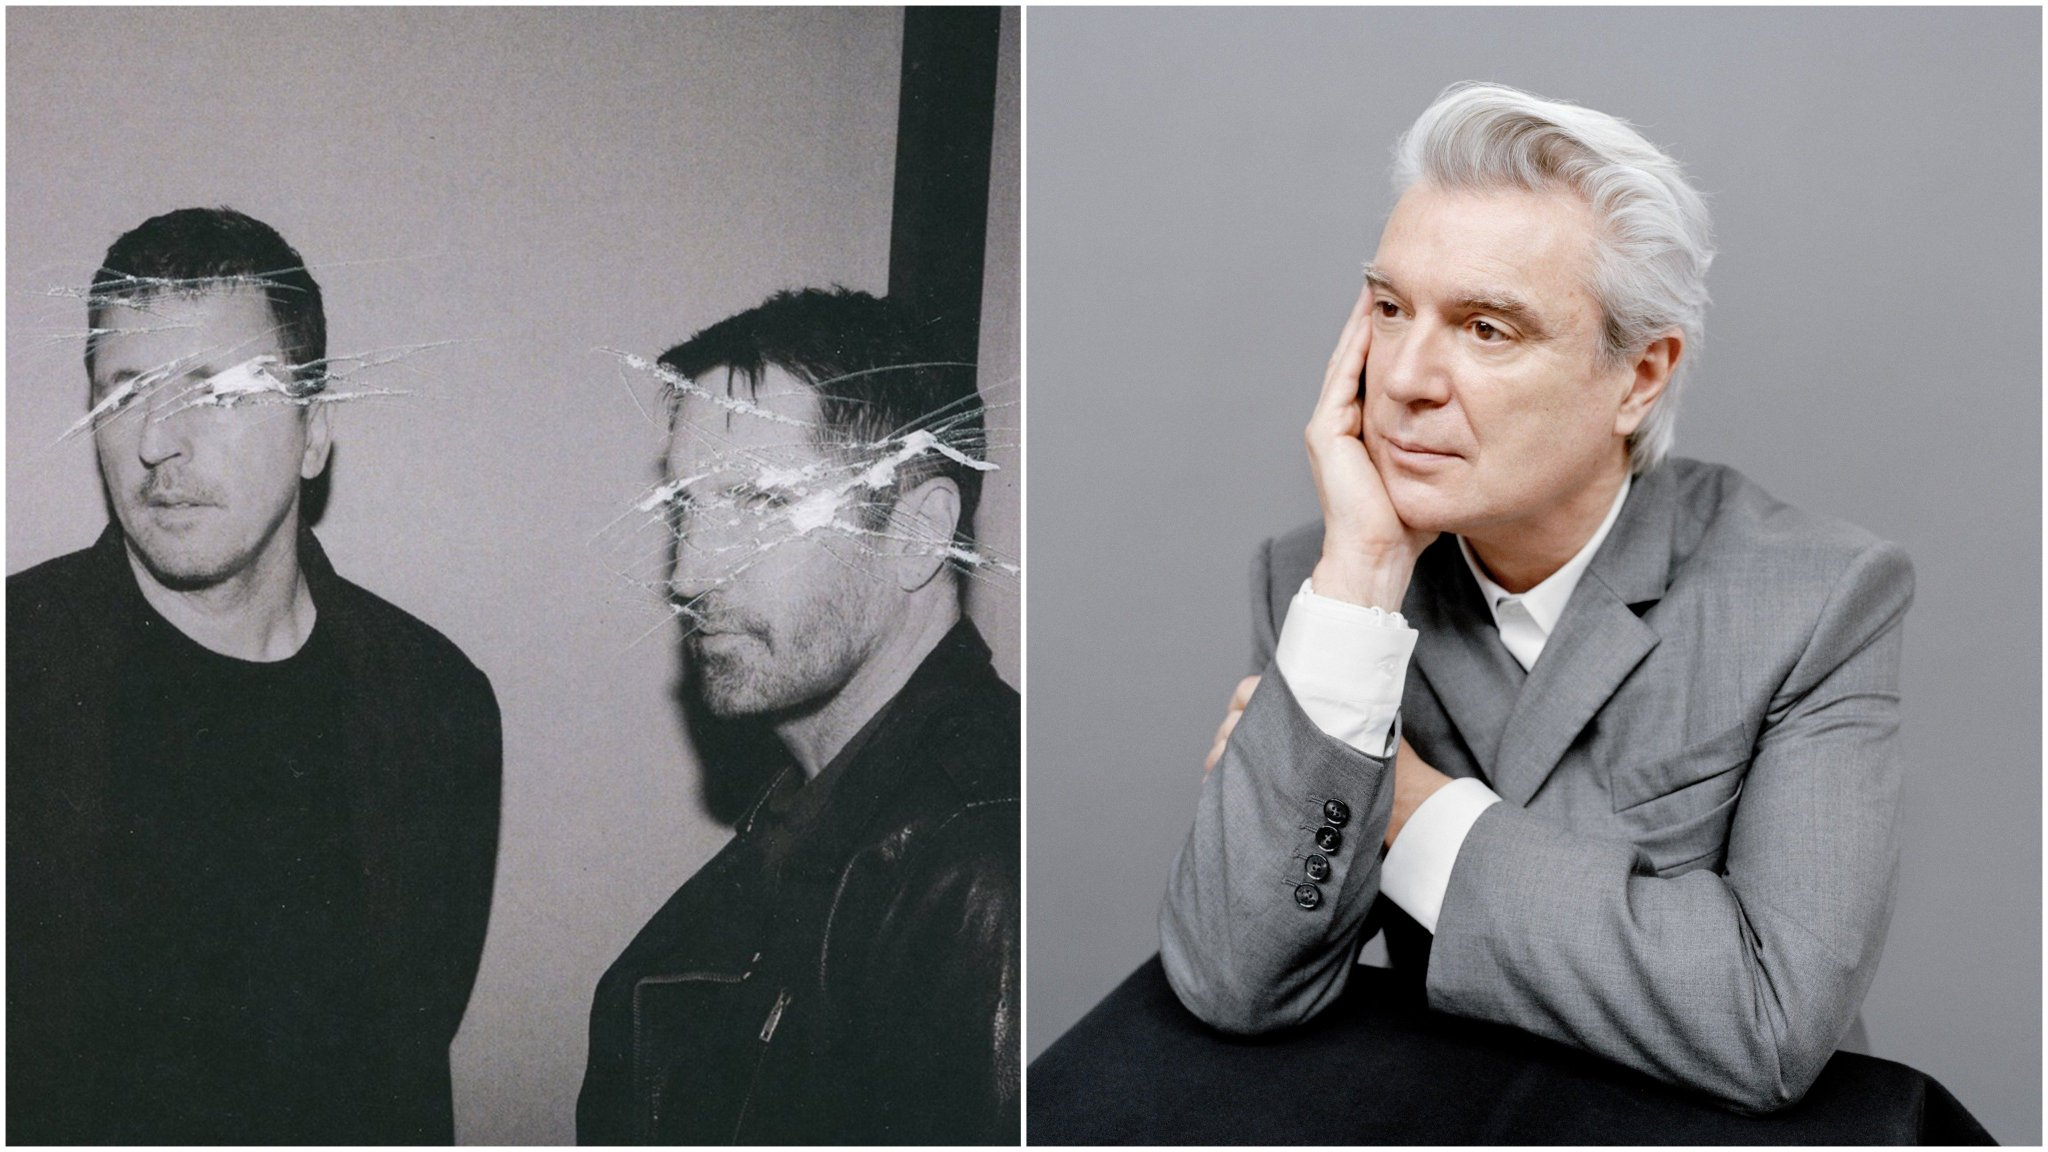 Nine Inch Nails and David Byrne shows at Kings Theatre on sale https://t.co/qiPGiEQB2G https://t.co/sxgdf7bJ9v